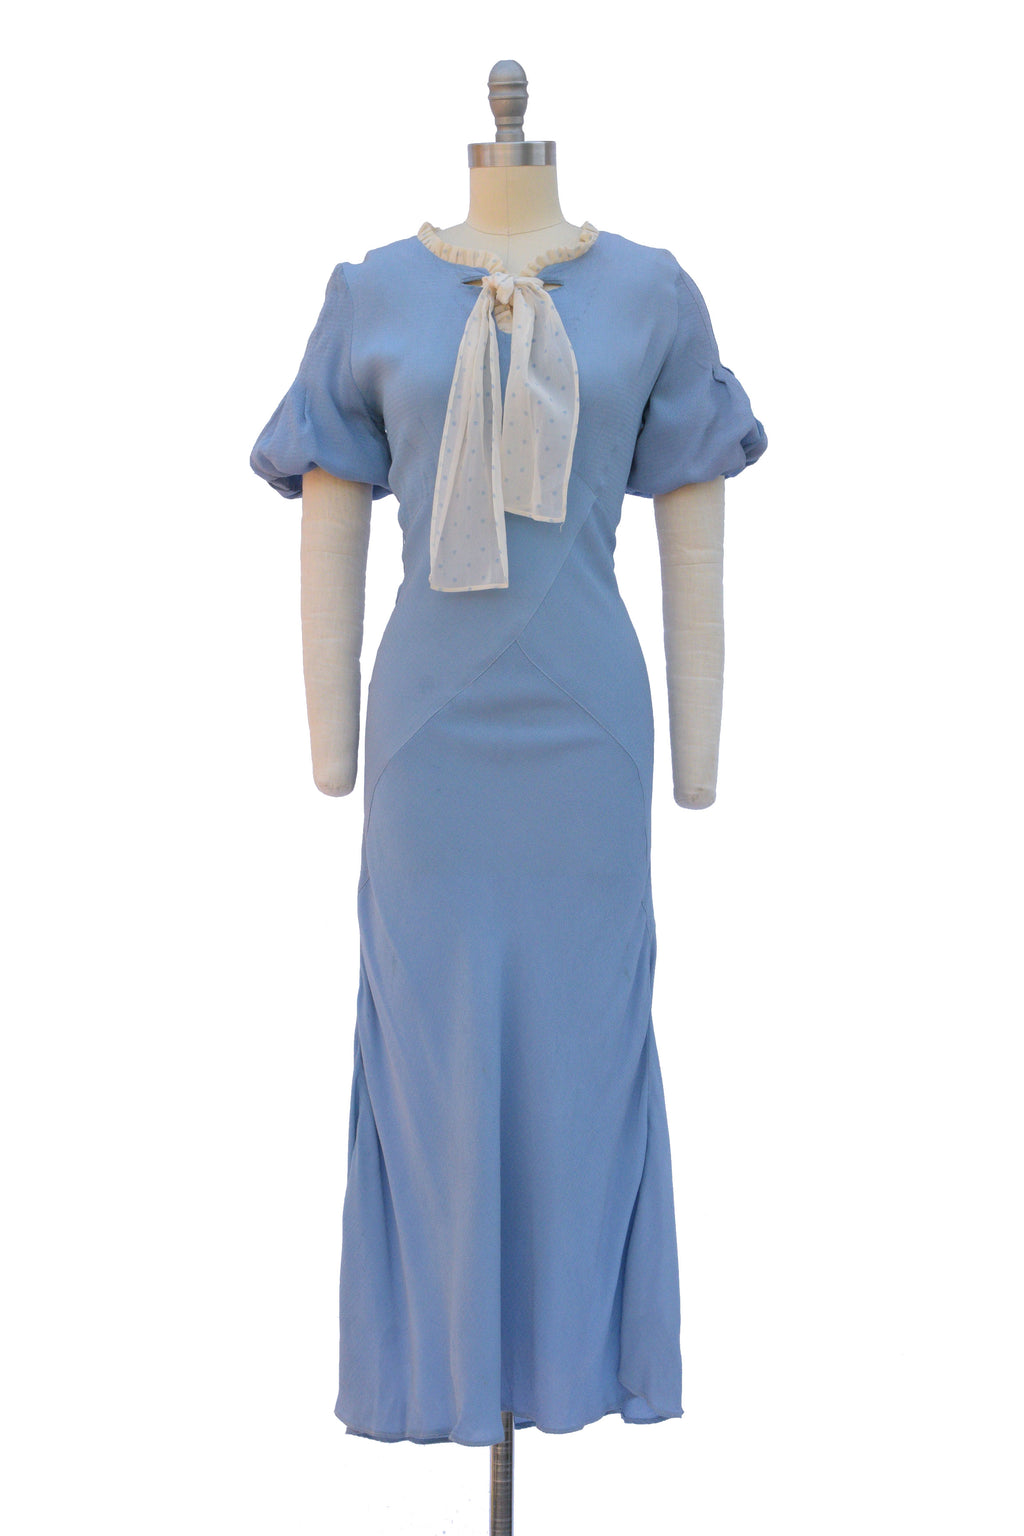 Gorgeous 1930s Perwinkle Bias Cut Day Dress with Bubble Sleeves and Necktie